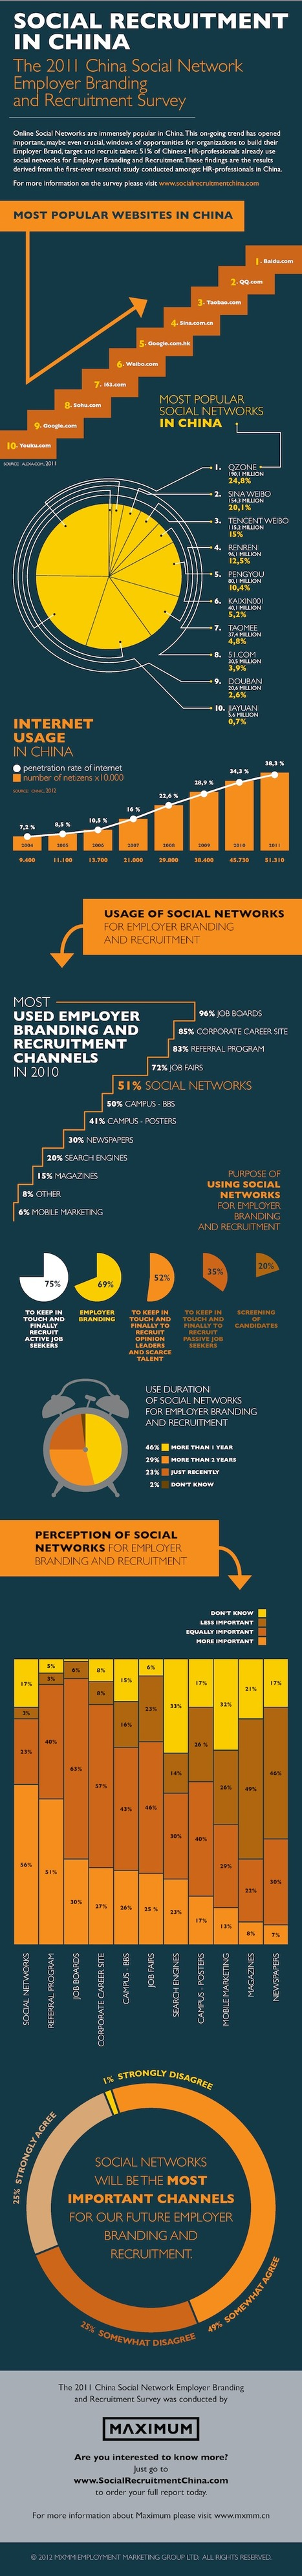 #SocialRecruiting and employer branding in China(infographic) #SRChina | Talent Communities | Scoop.it